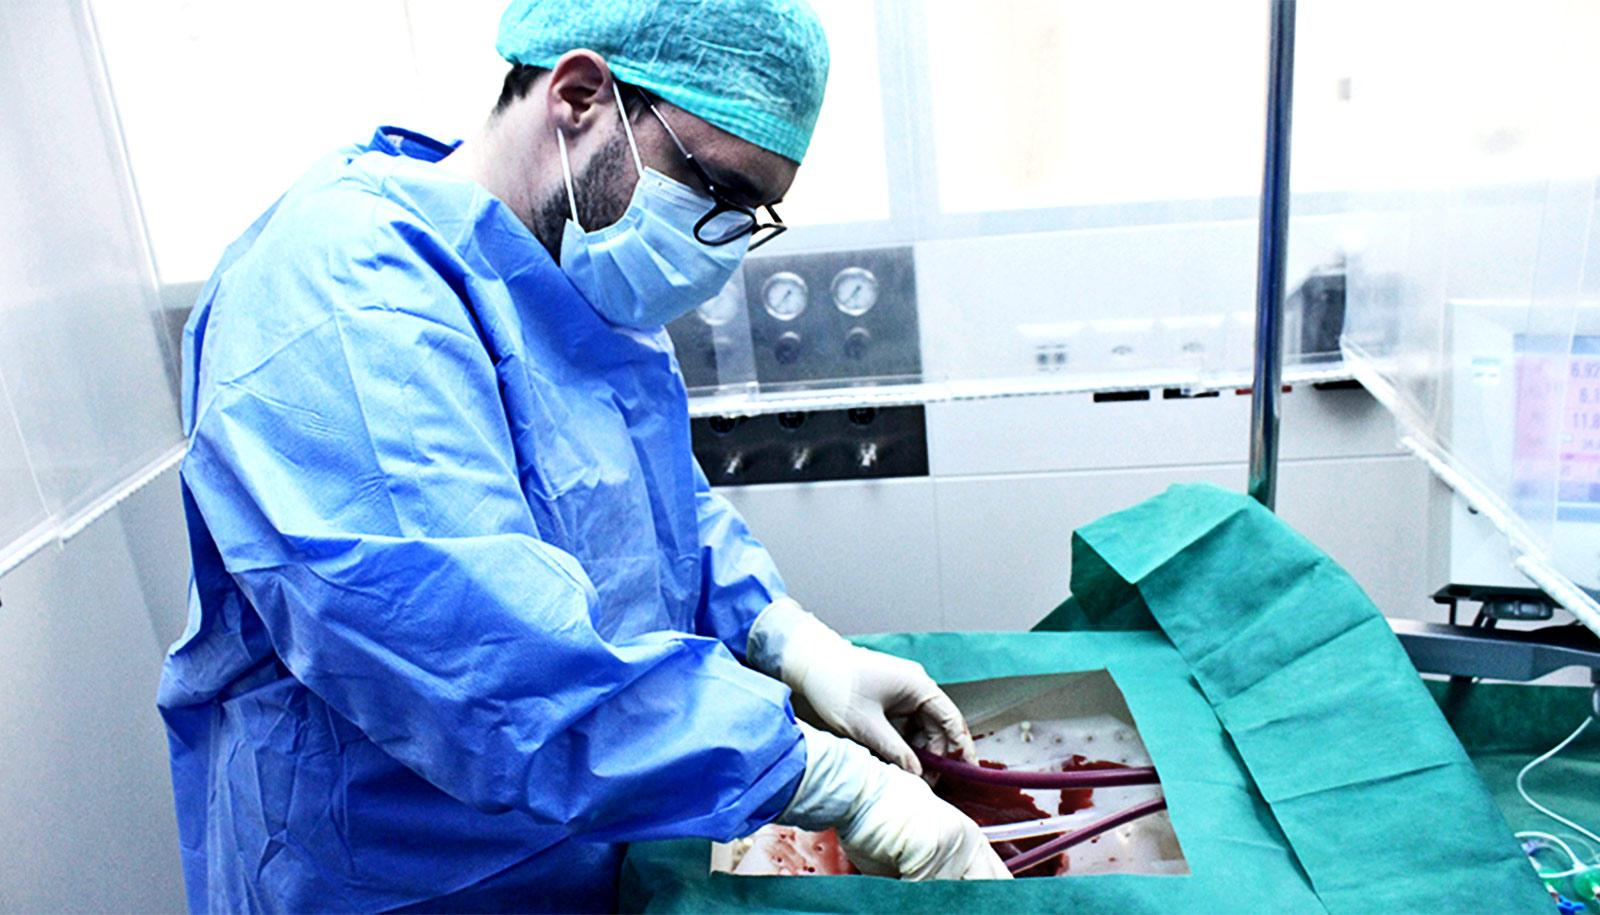 A researcher in blue scrubs, white gloves, a face mask, and green hair net places a liver in the perfusion machine